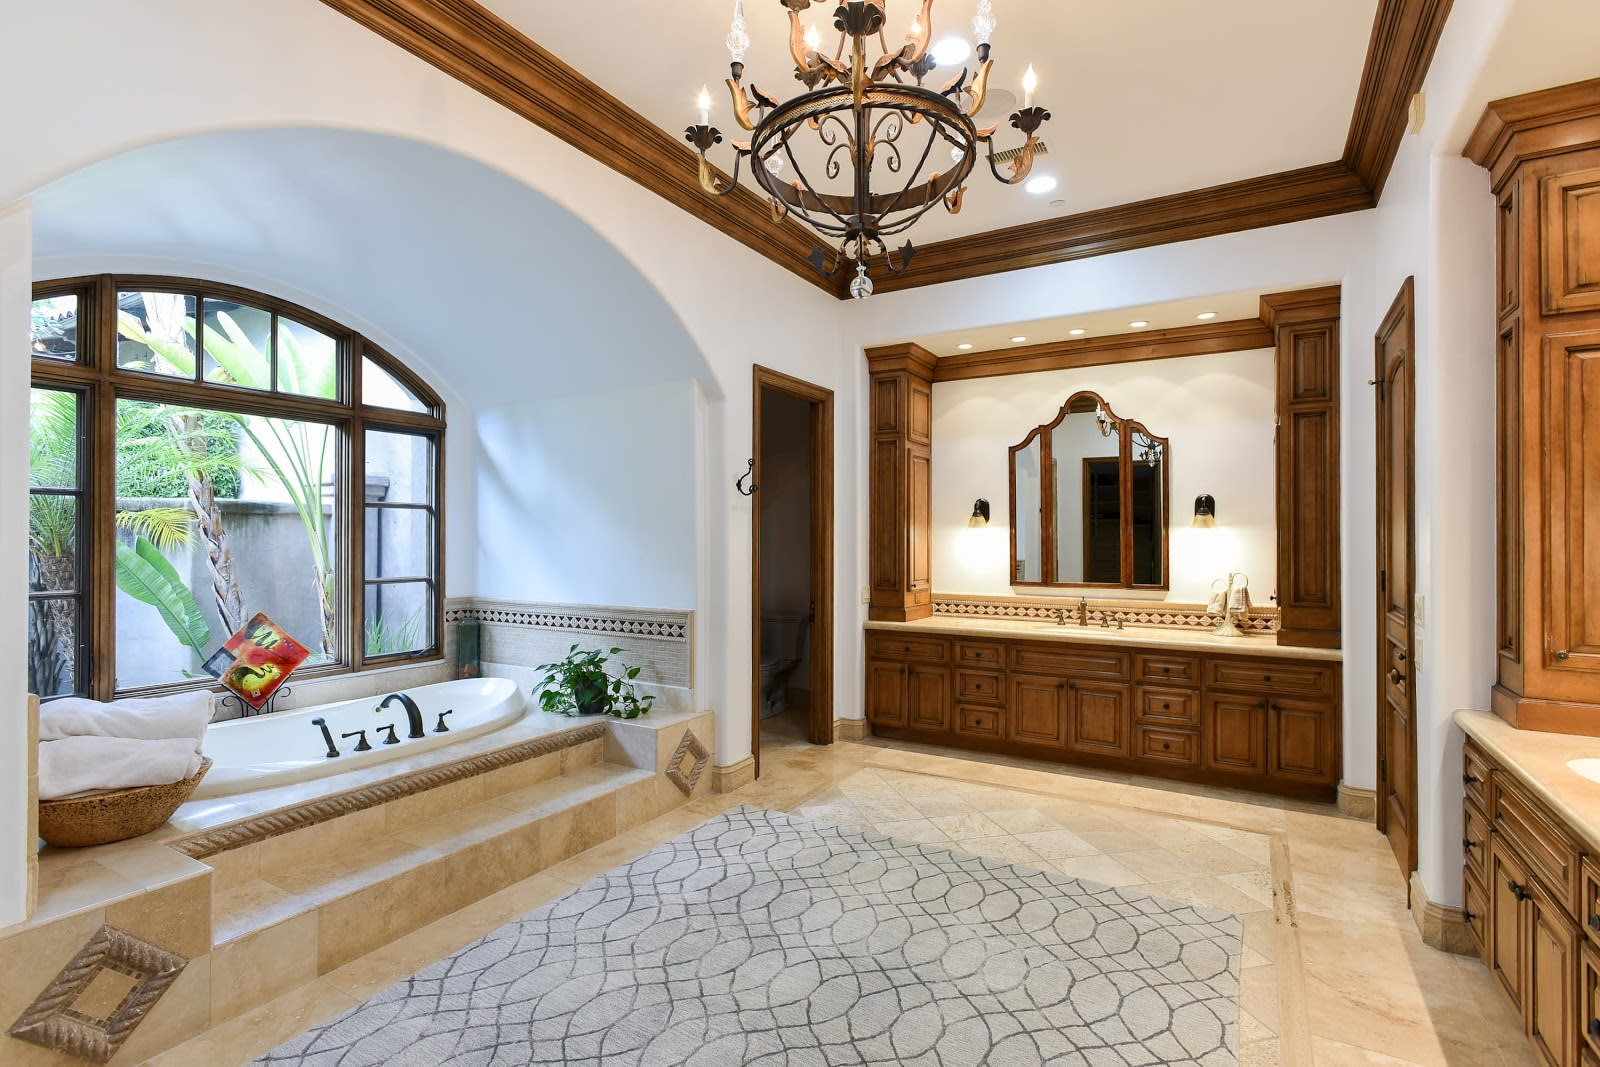 4 Trending Colors for Your Rancho Santa Fe Luxury Bathroom Makeover